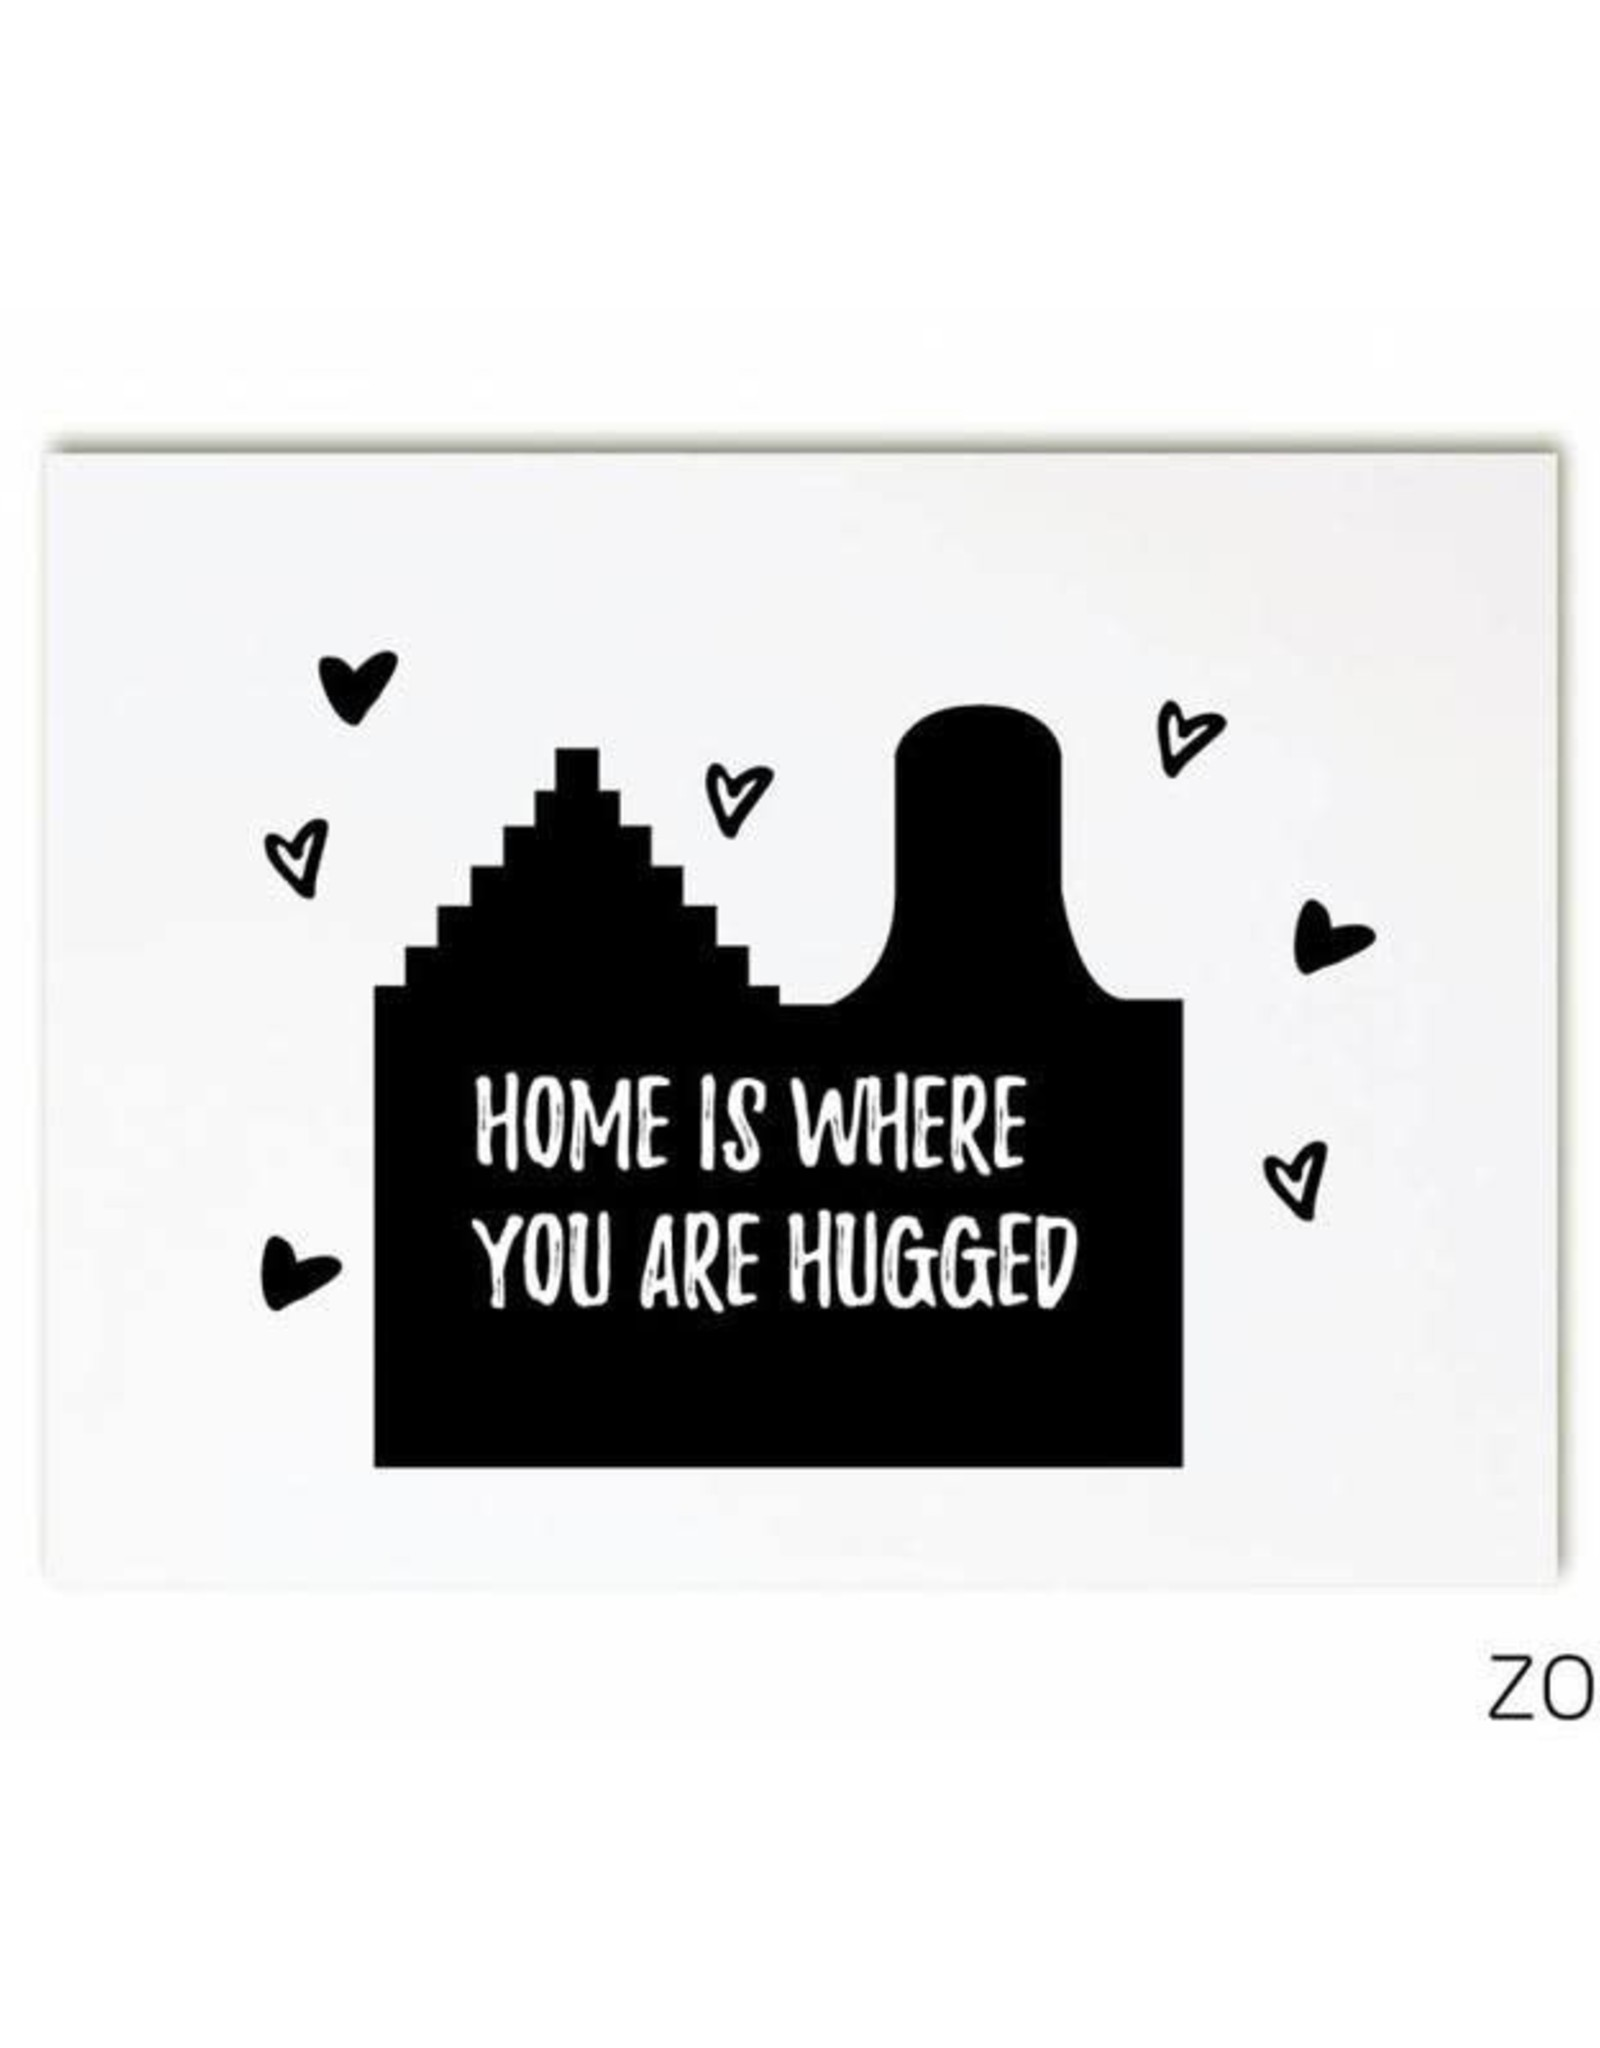 zoedt kaart a6 Zoedt: Home is where you are hugged